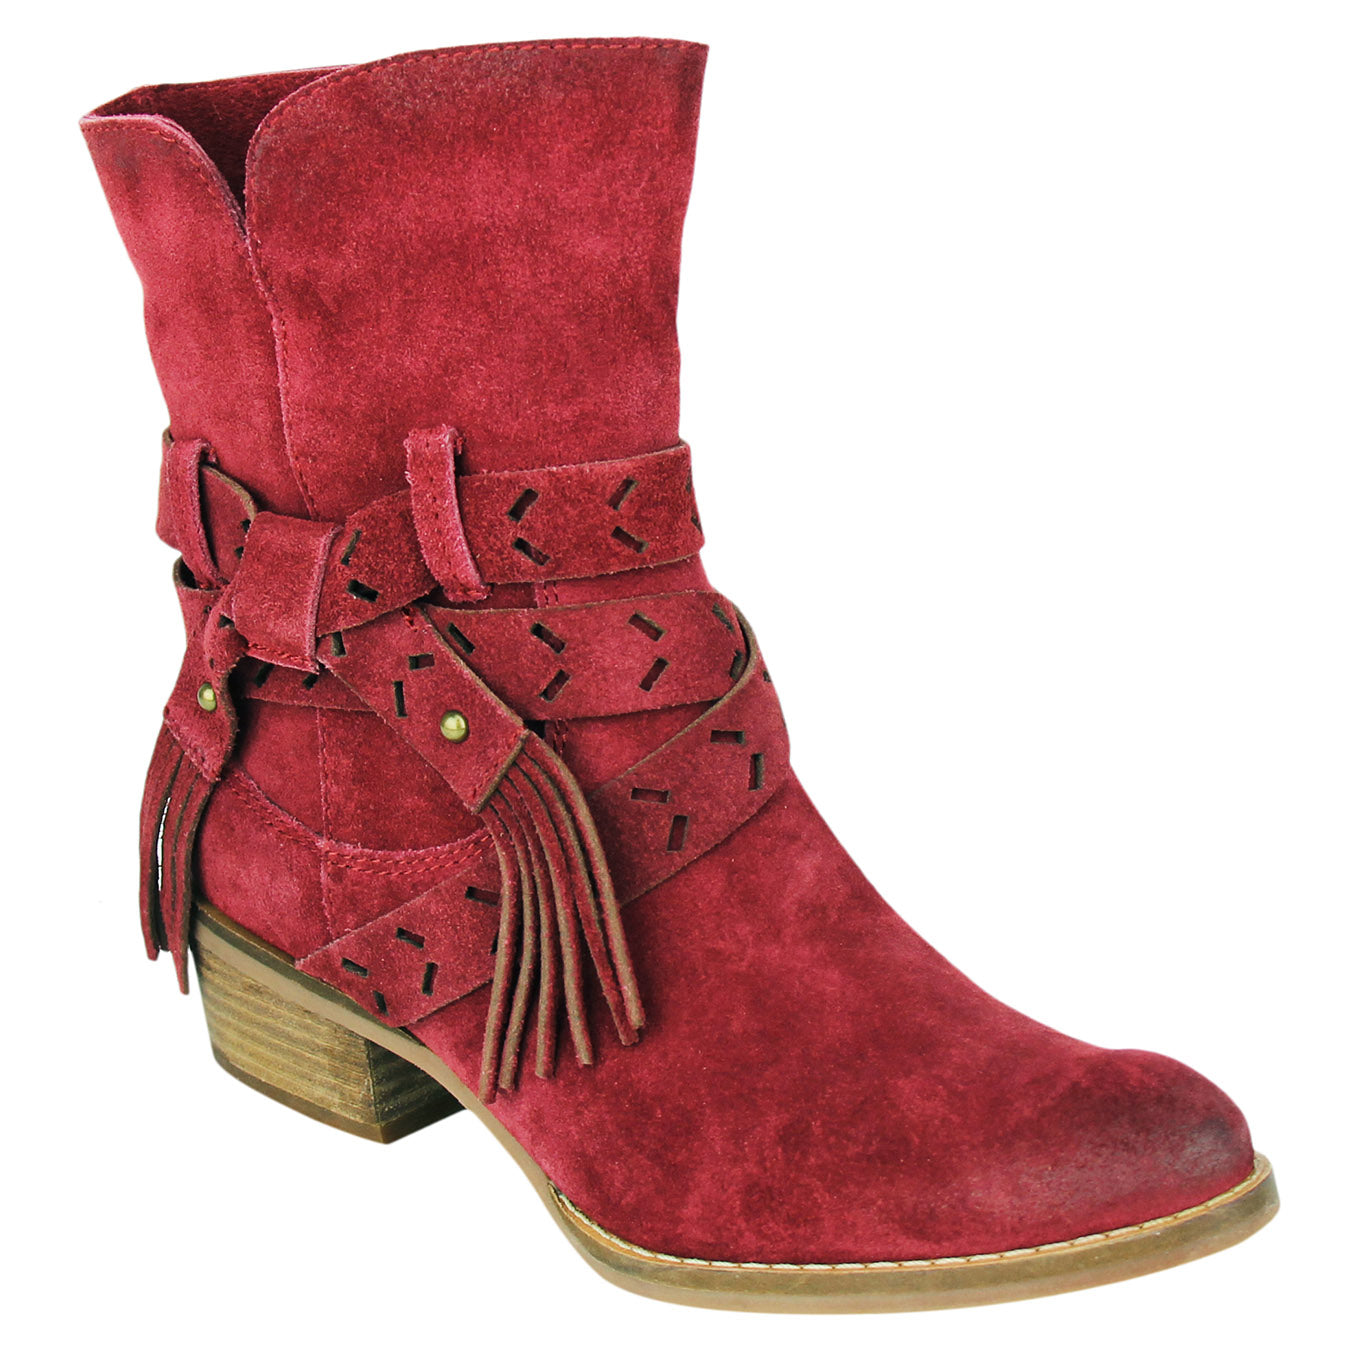 NAUGHTY_MONKEY_RELAXED_STRAP_FRINGE_BOOTIE_WILSON_RED